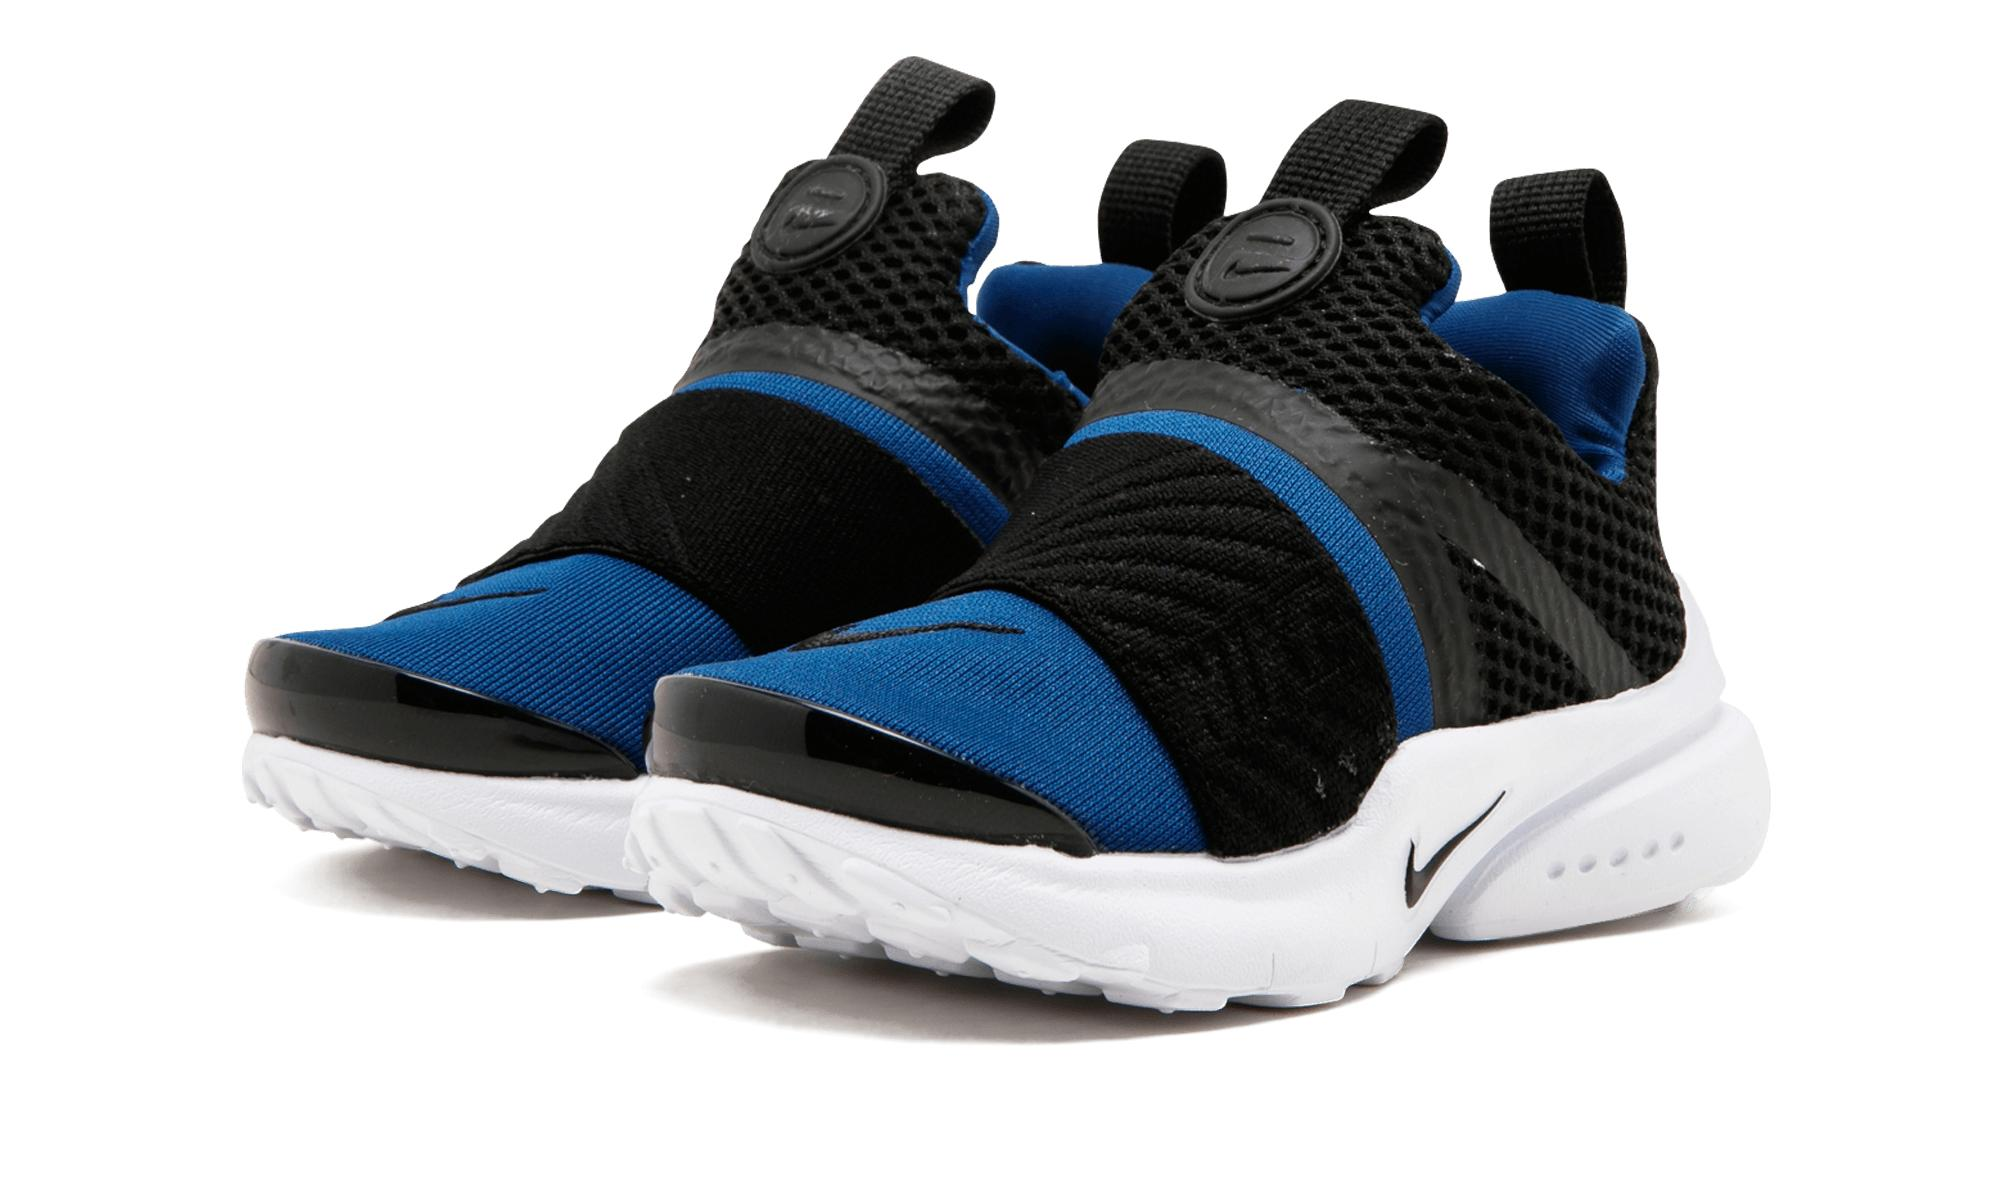 9d8581aee0 Nike Presto Extreme Td for Men - Lyst